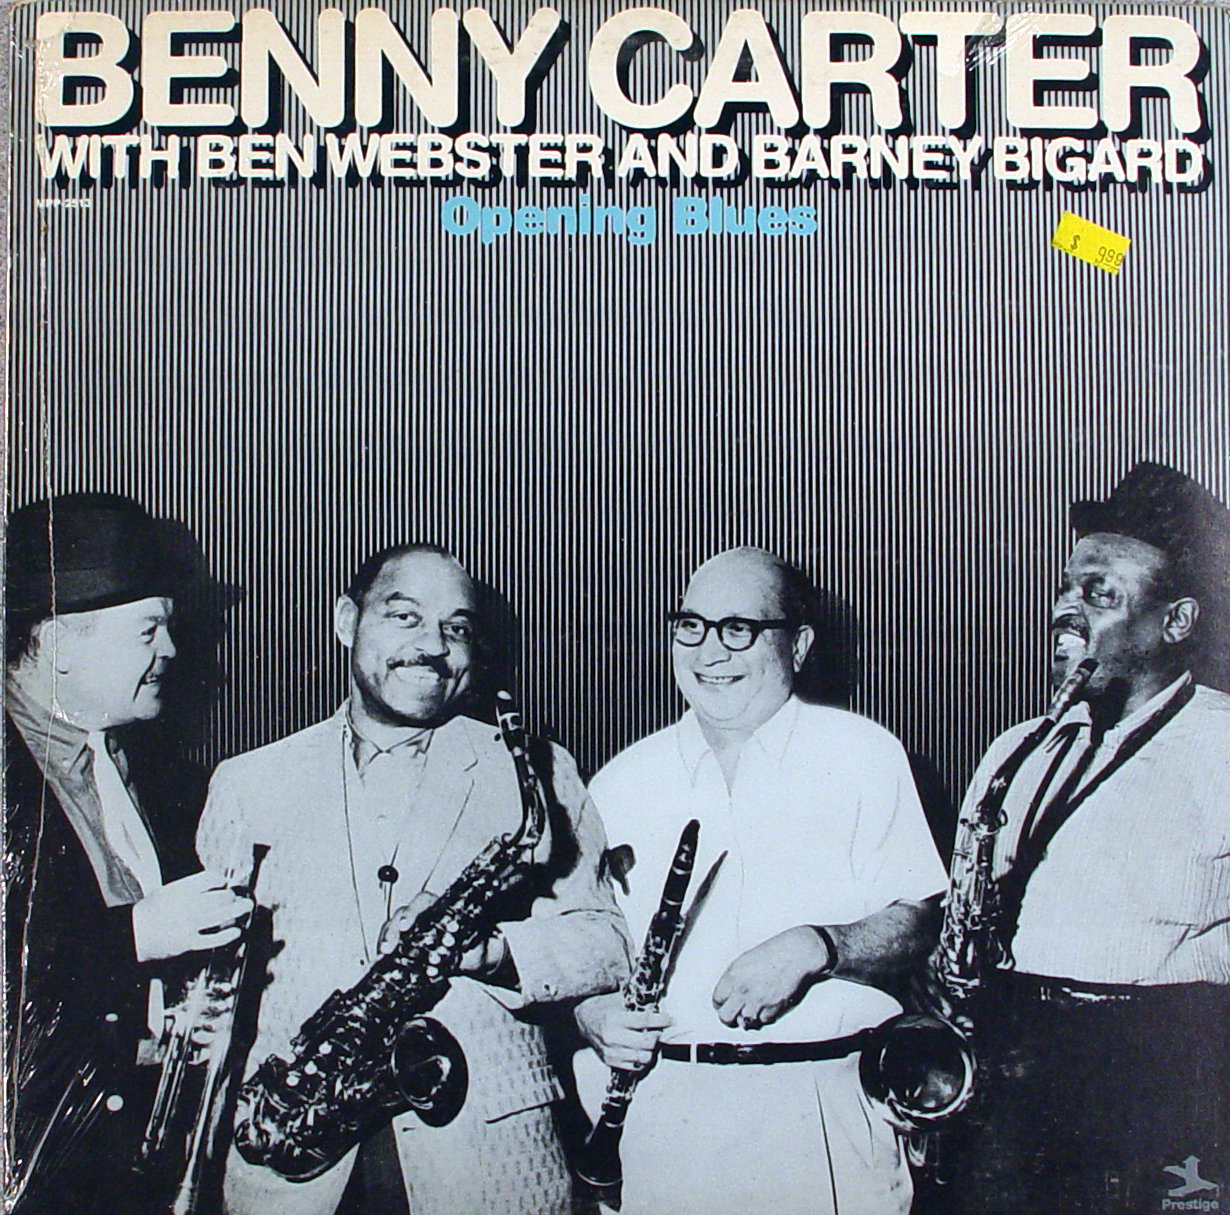 """Benny Carter with Ben Webster And Barney Bigard Vinyl 12"""" (New)"""